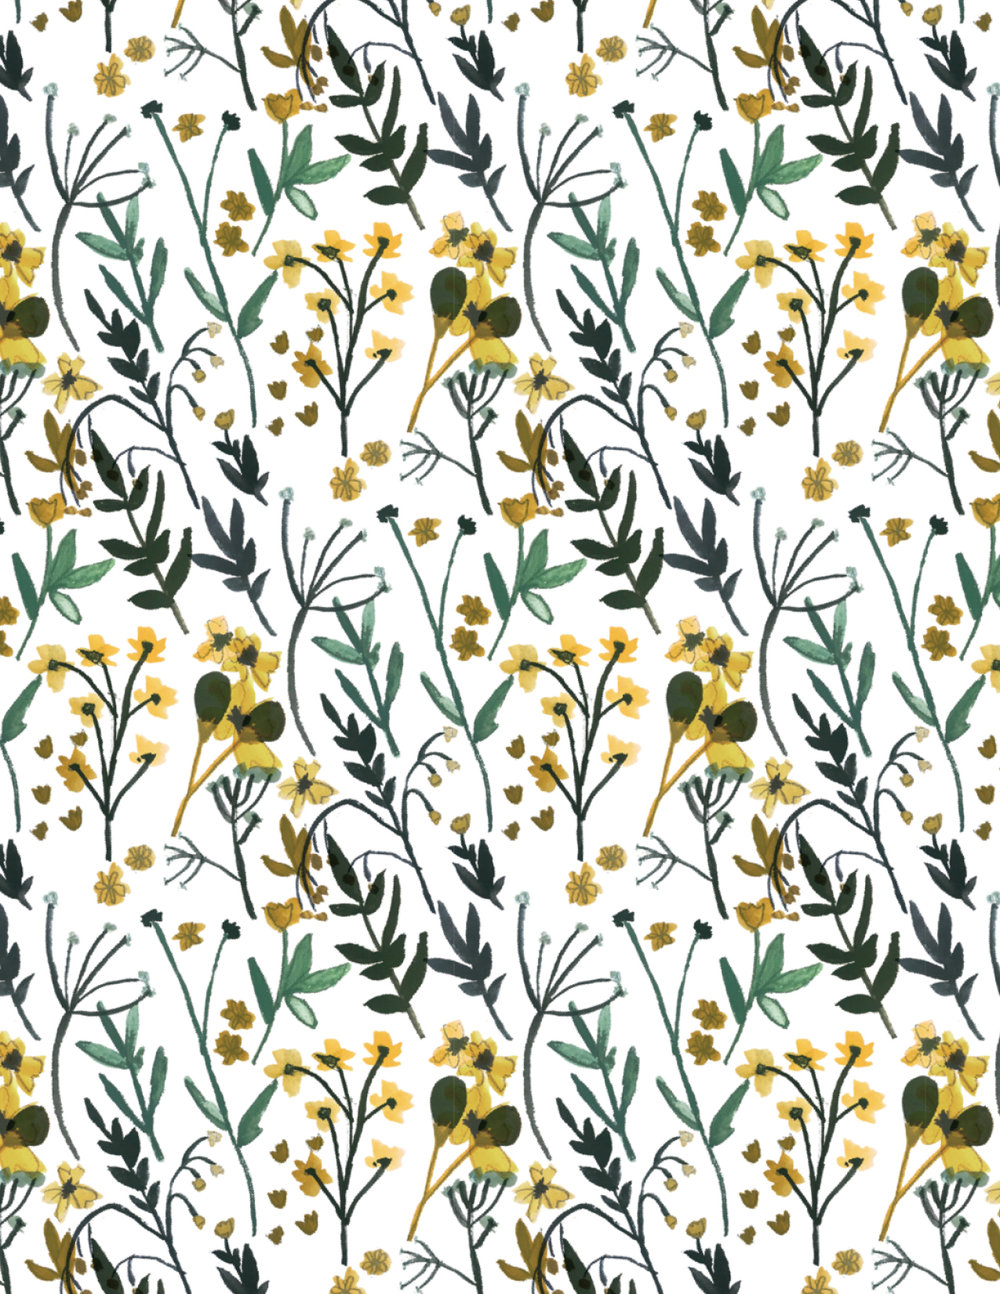 Jessbruggink_patterns_new16.jpg